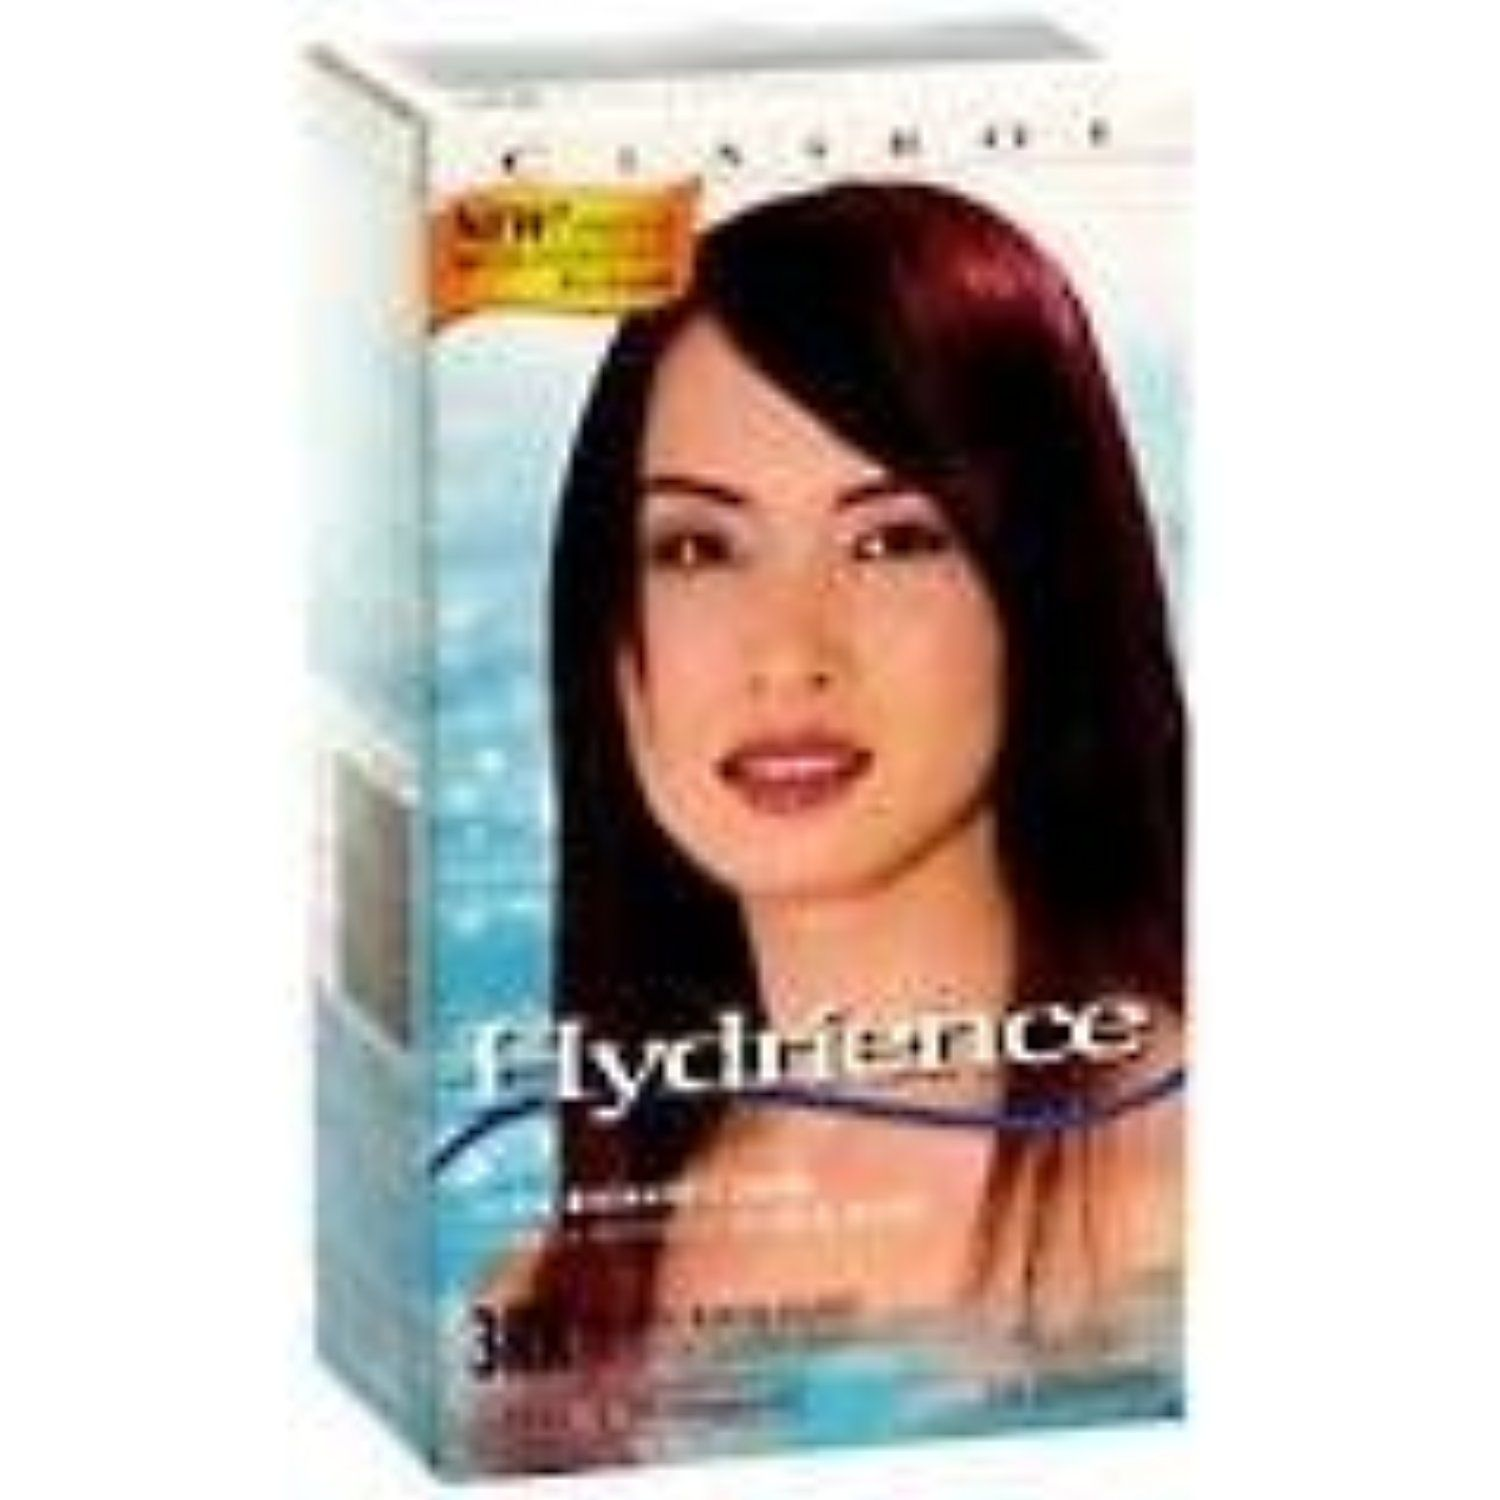 Clairol Hydrience Haircoloringproducts Hair Coloring Products